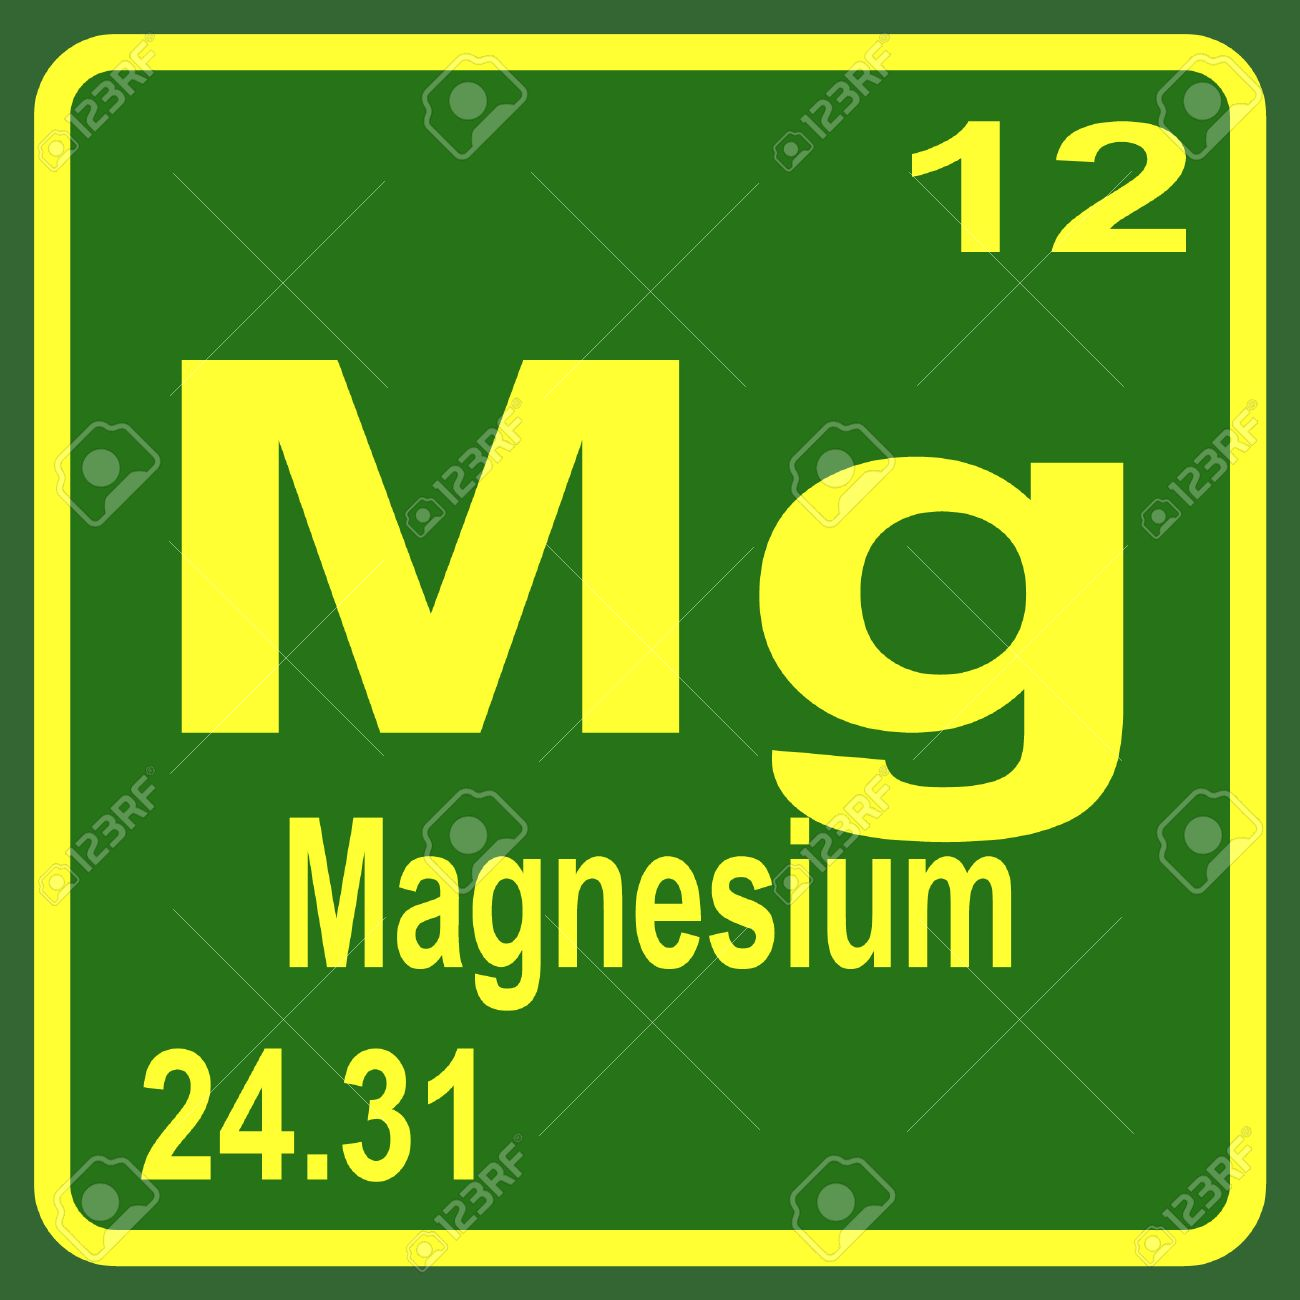 Periodic table of elements magnesium royalty free cliparts periodic table of elements magnesium stock vector 53901617 urtaz